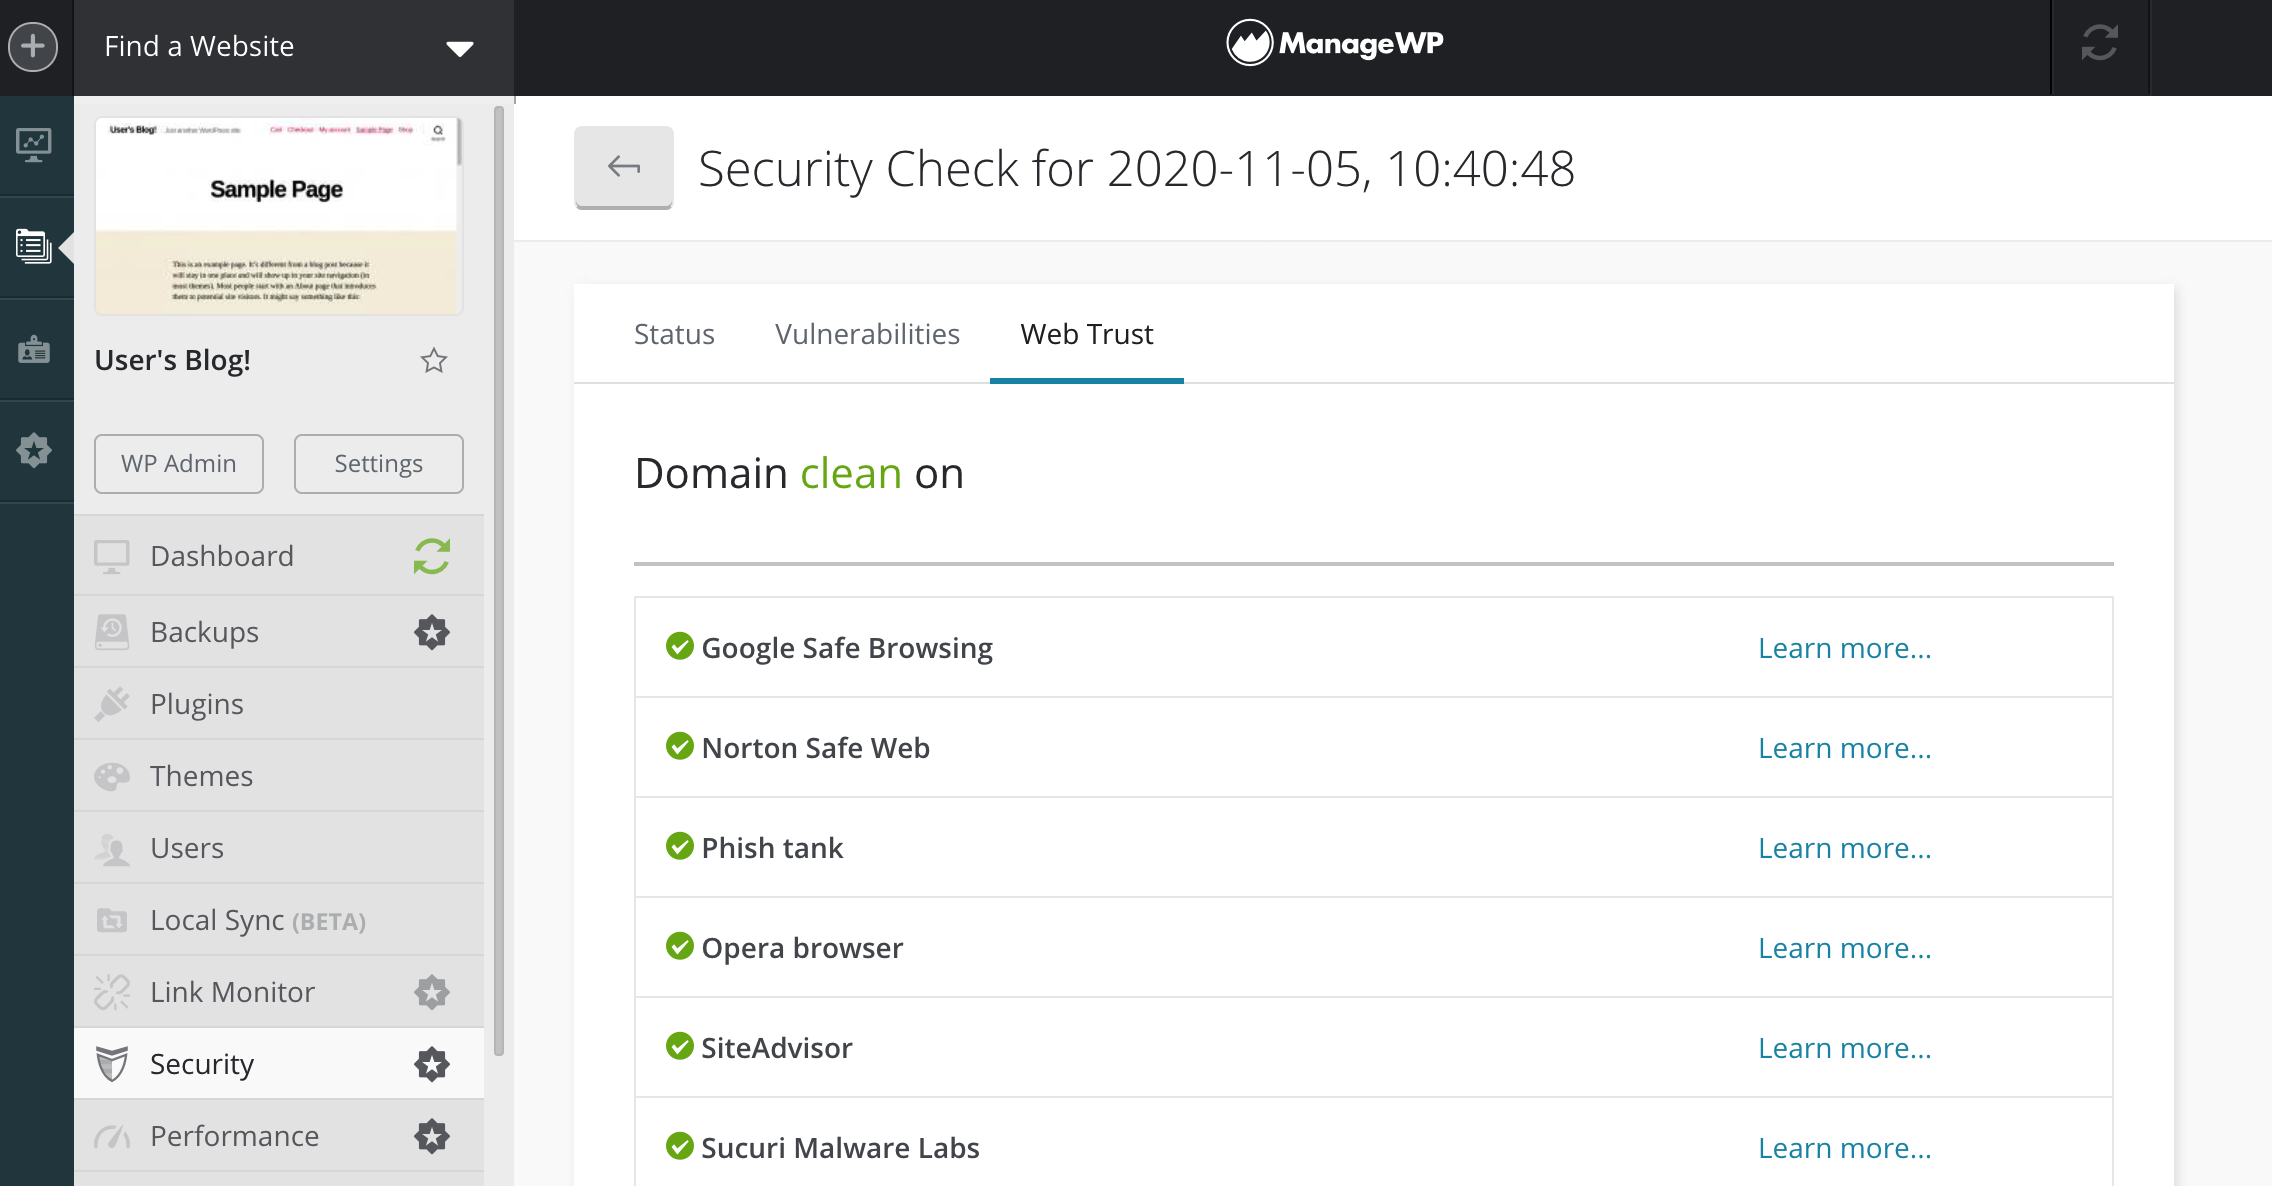 ManageWP's Security Check report, including blacklist information.